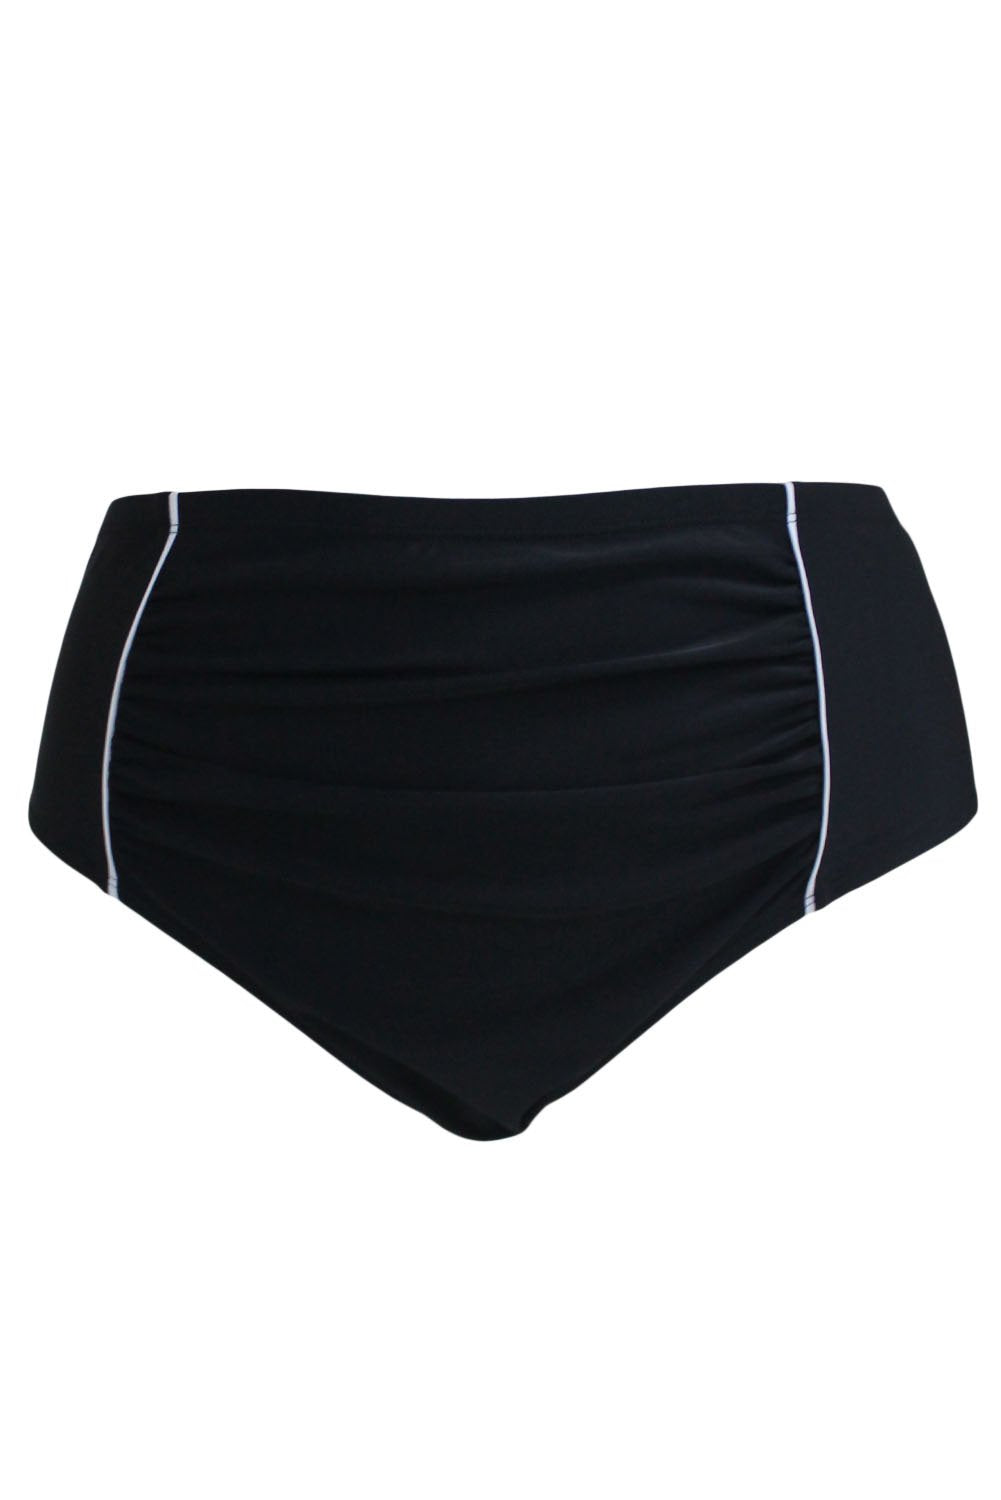 White Piping Stripes Accent Black High Waist Swim Briefs-Swimwear, Swim Bottoms-Azura Exchange